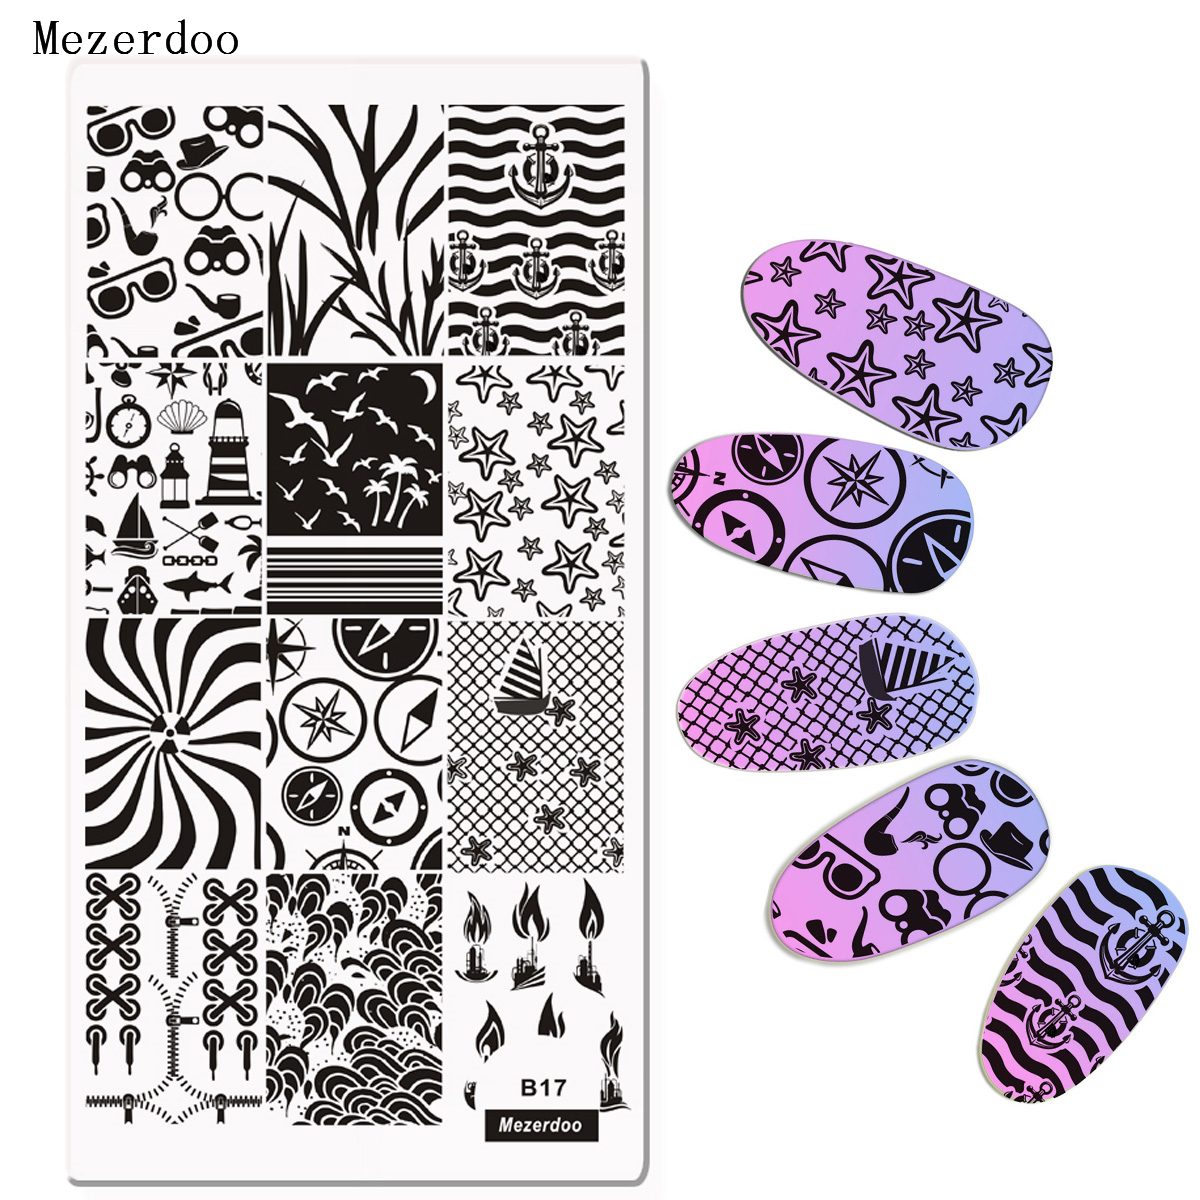 Nail Art Geometry Wave Anchor Stamping Template Nail Art Stamp Image Plate Sexy Girls Sunglasses Waves Design Manicure Nail Plates C27